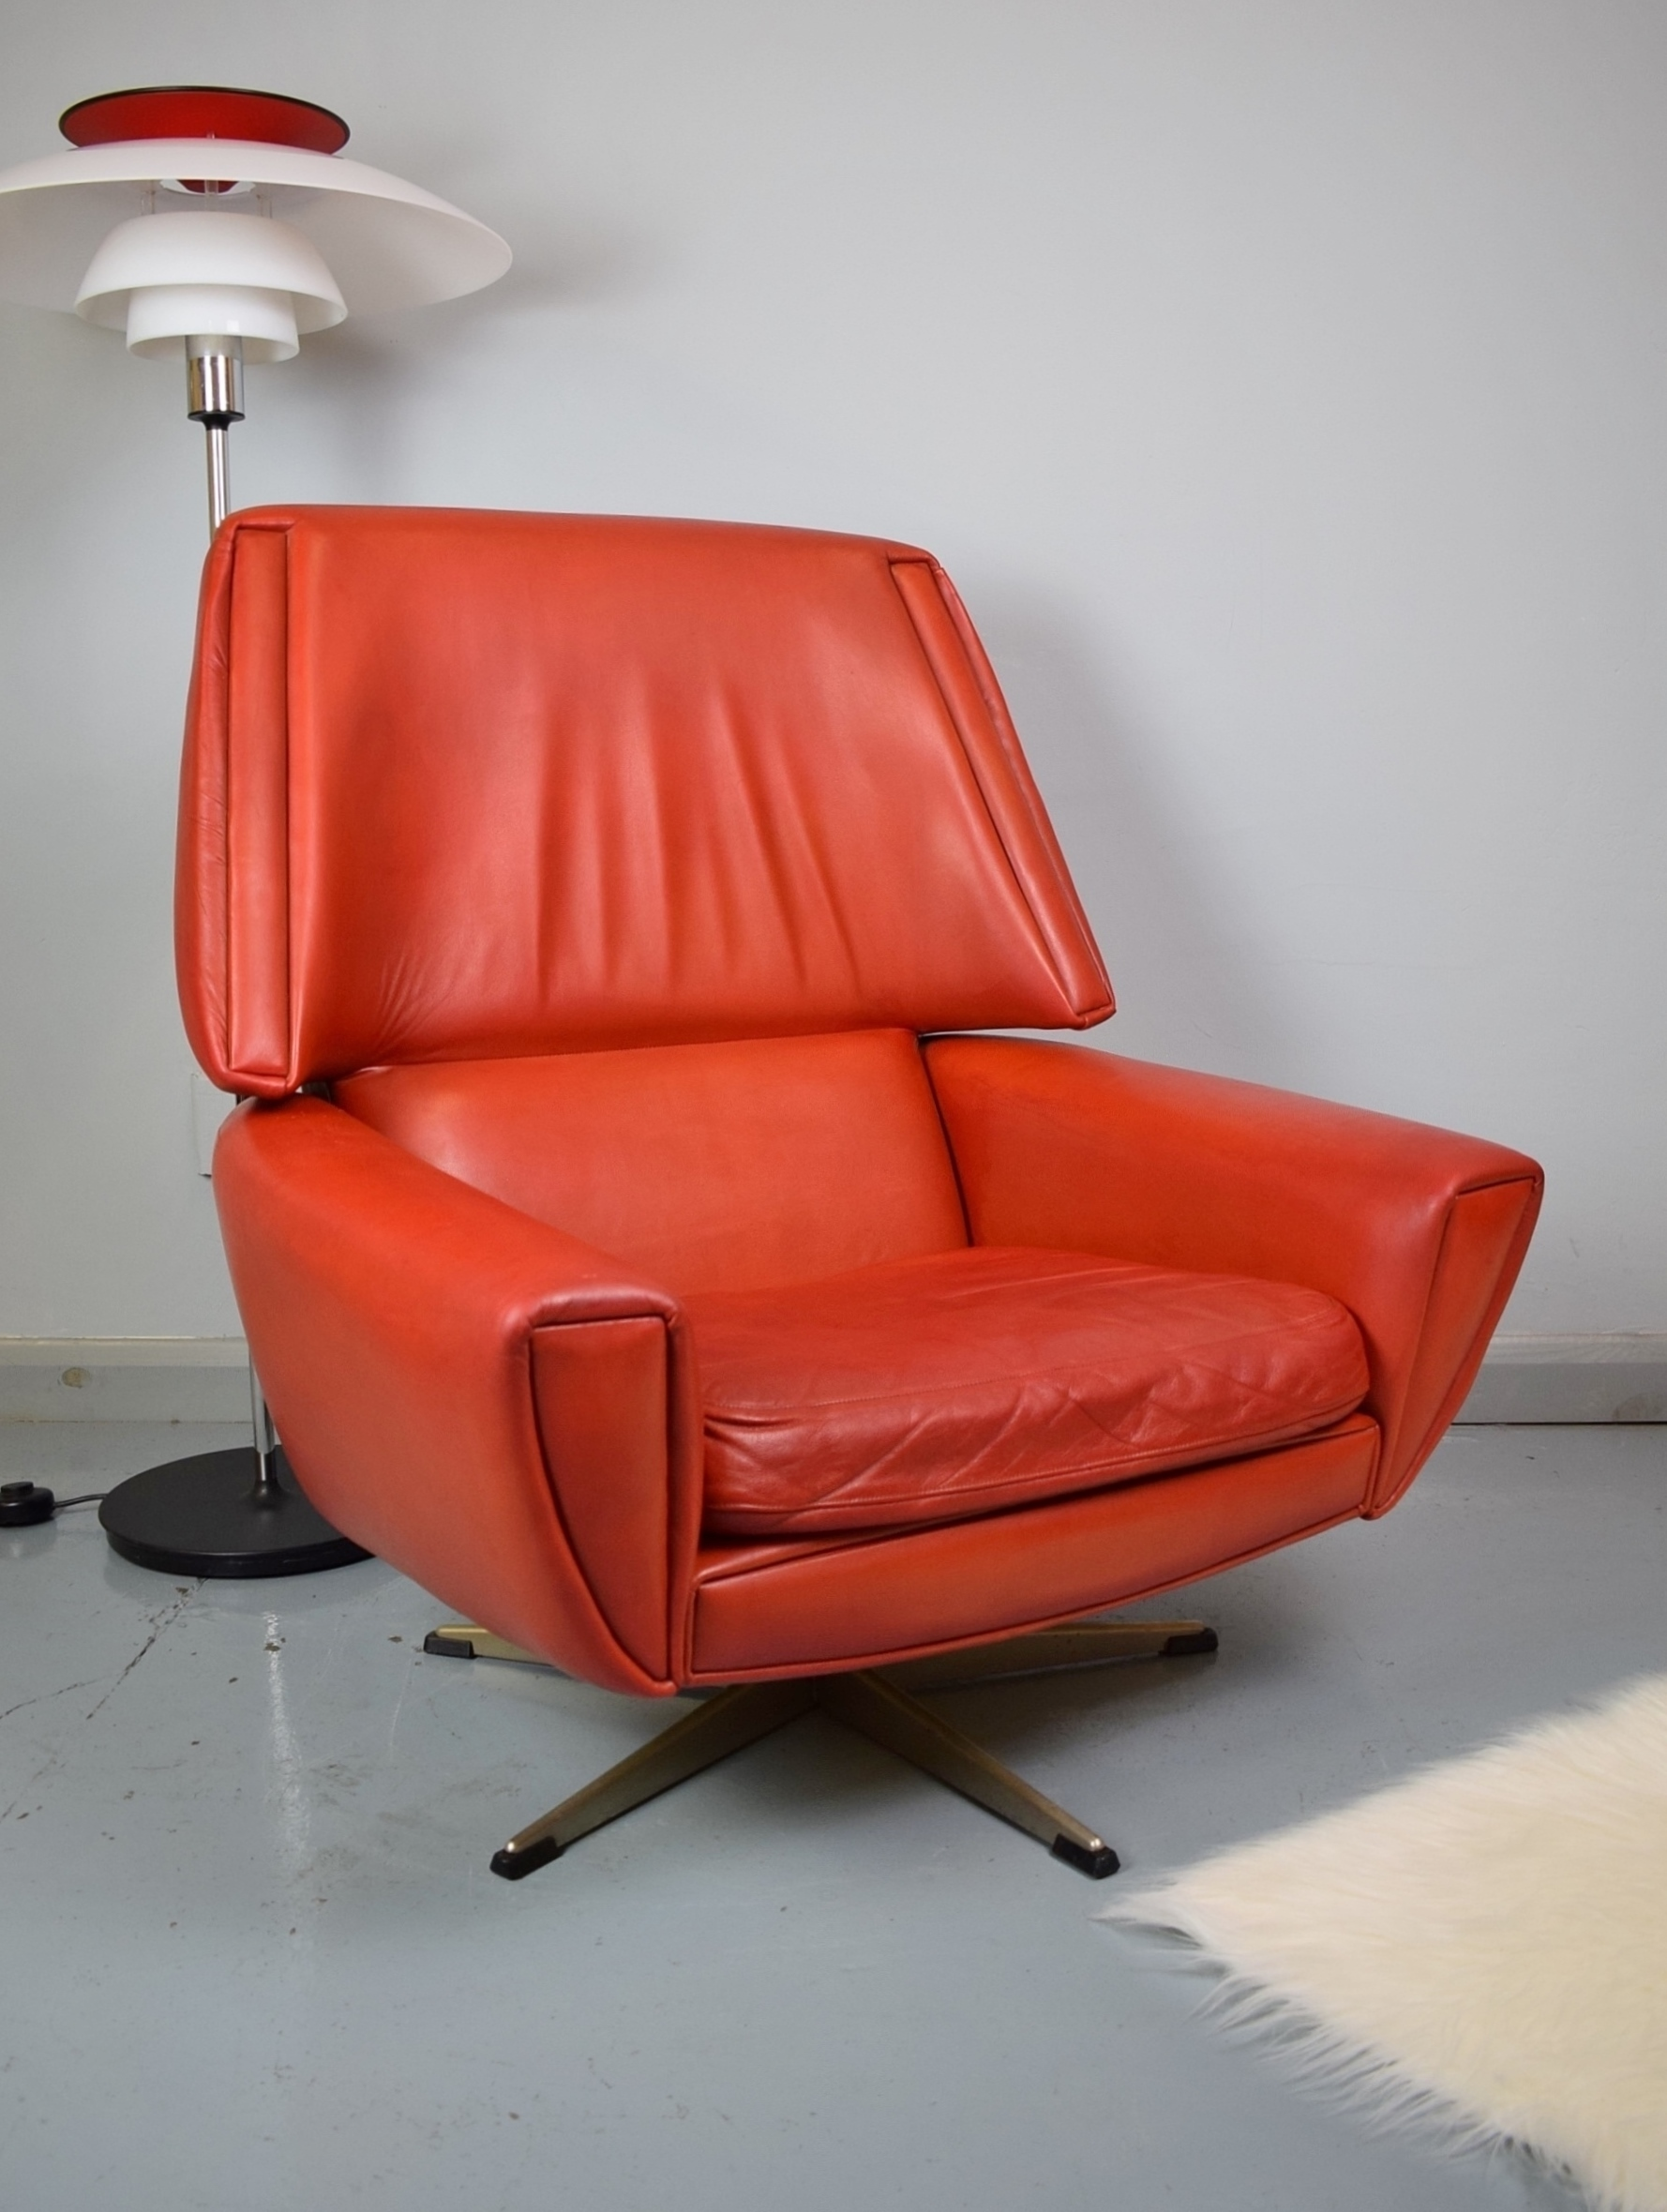 Outstanding Mid Century Vintage Retro Danish Red Leather Swivel Lounge Arm Chair 1960S 70S Squirreltailoven Fun Painted Chair Ideas Images Squirreltailovenorg